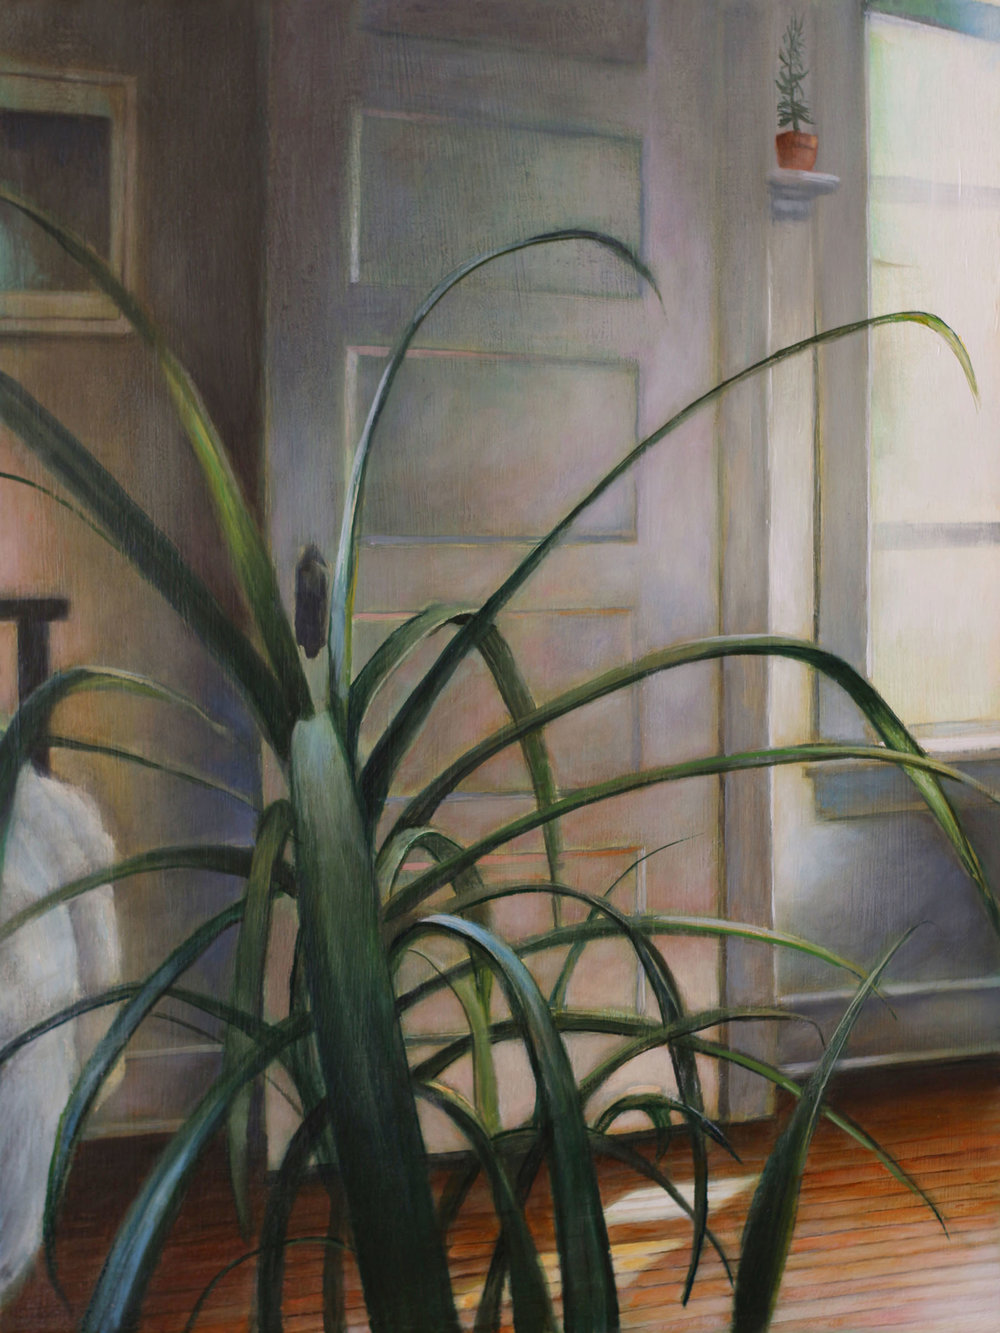 Plant in Front   2017  Oil on linen  12 x 9 inches